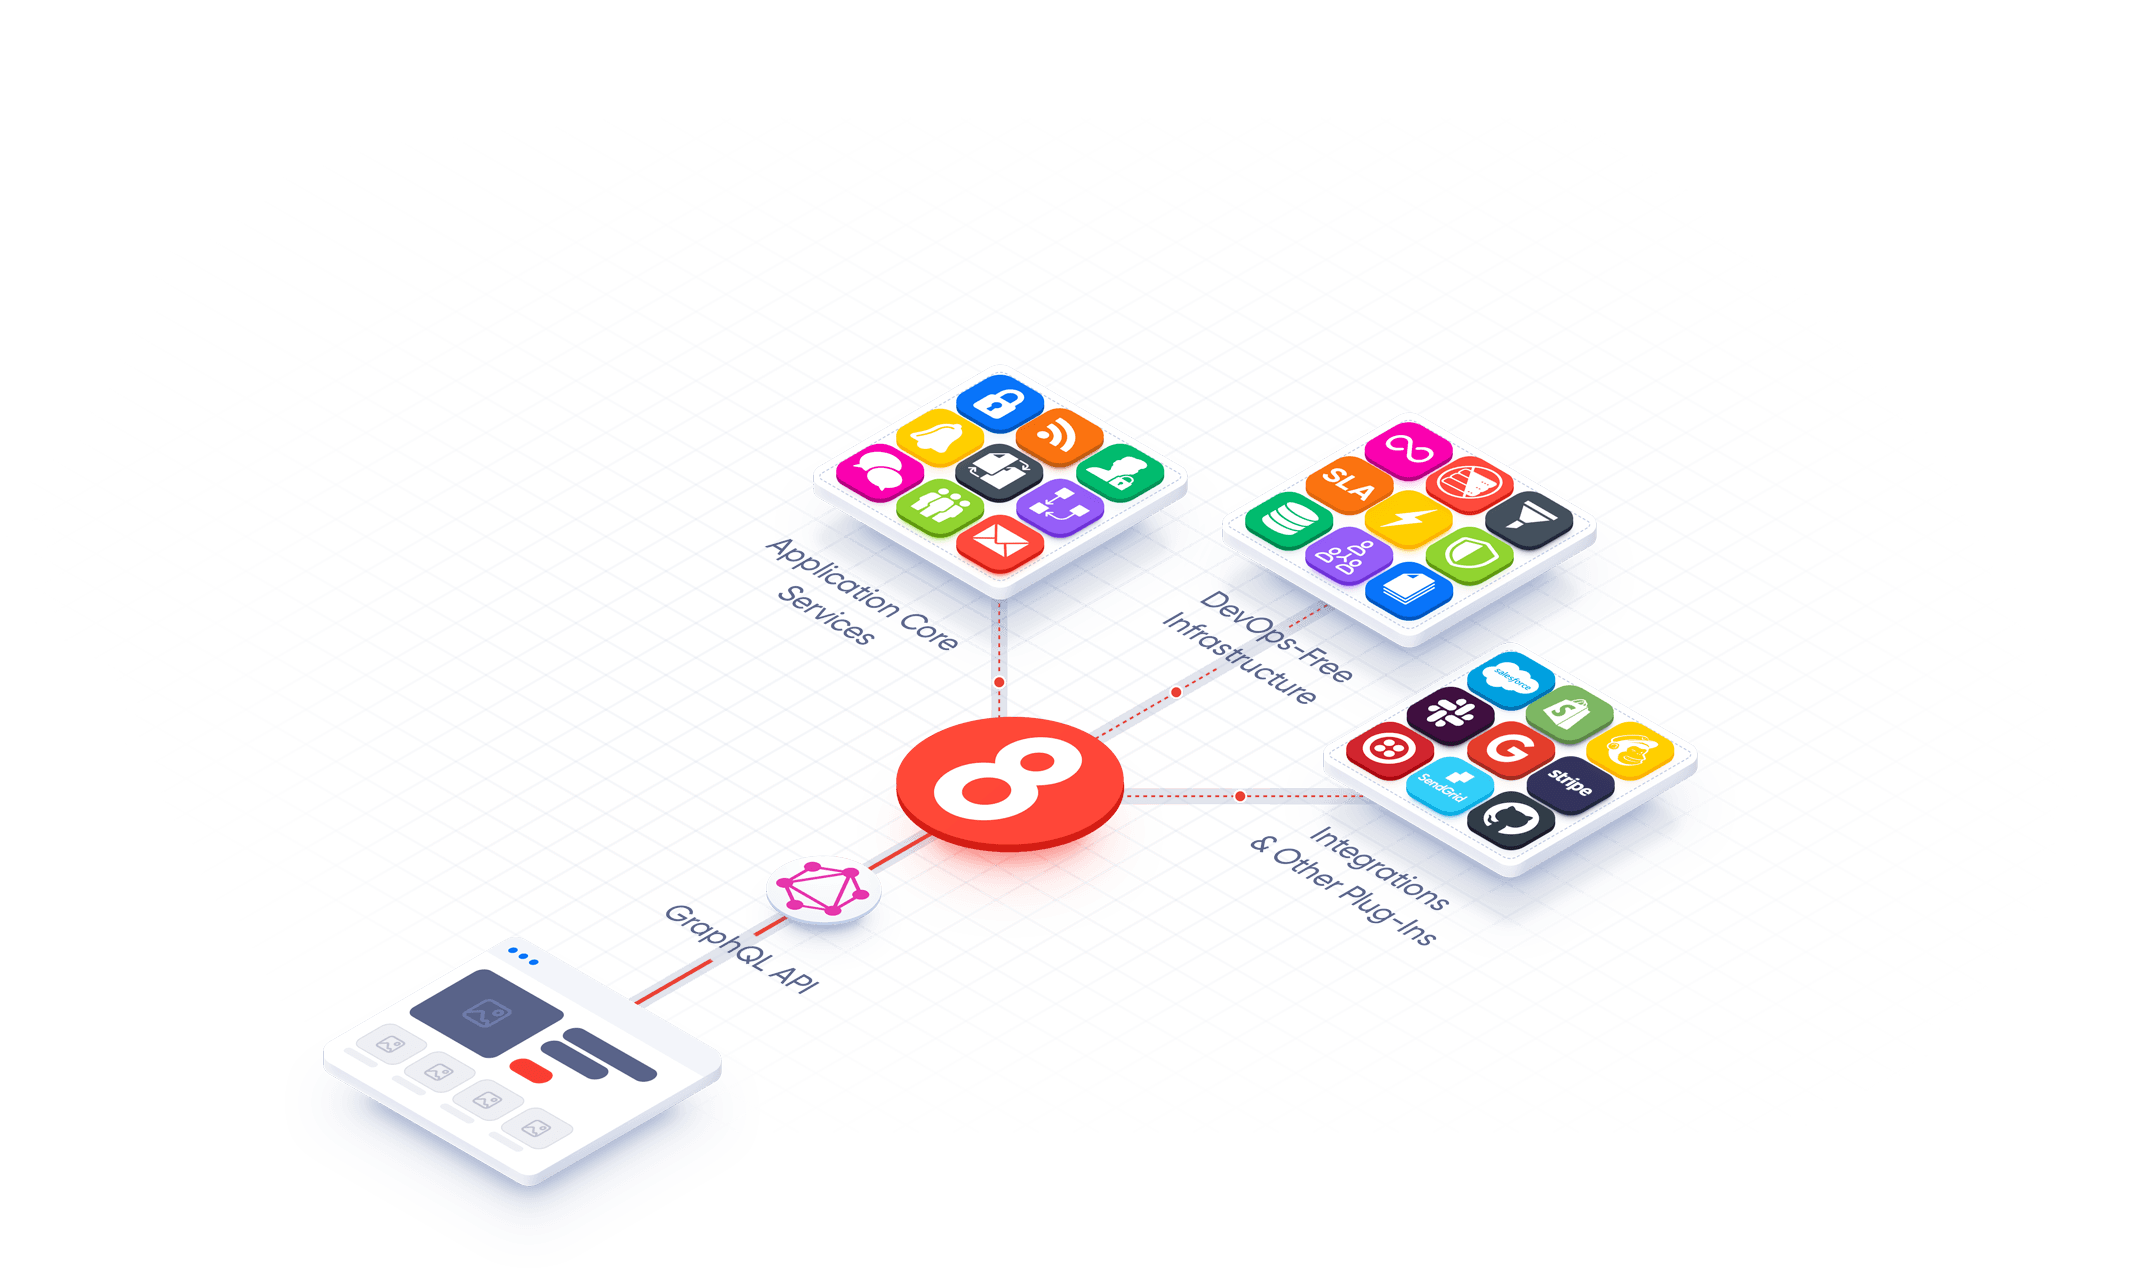 8base illustration that shows 3 platforms with icons representing application core services, DevOps-Free Infrastructure, Integrations & Plugins; all connected to a user interface through a graphql API.